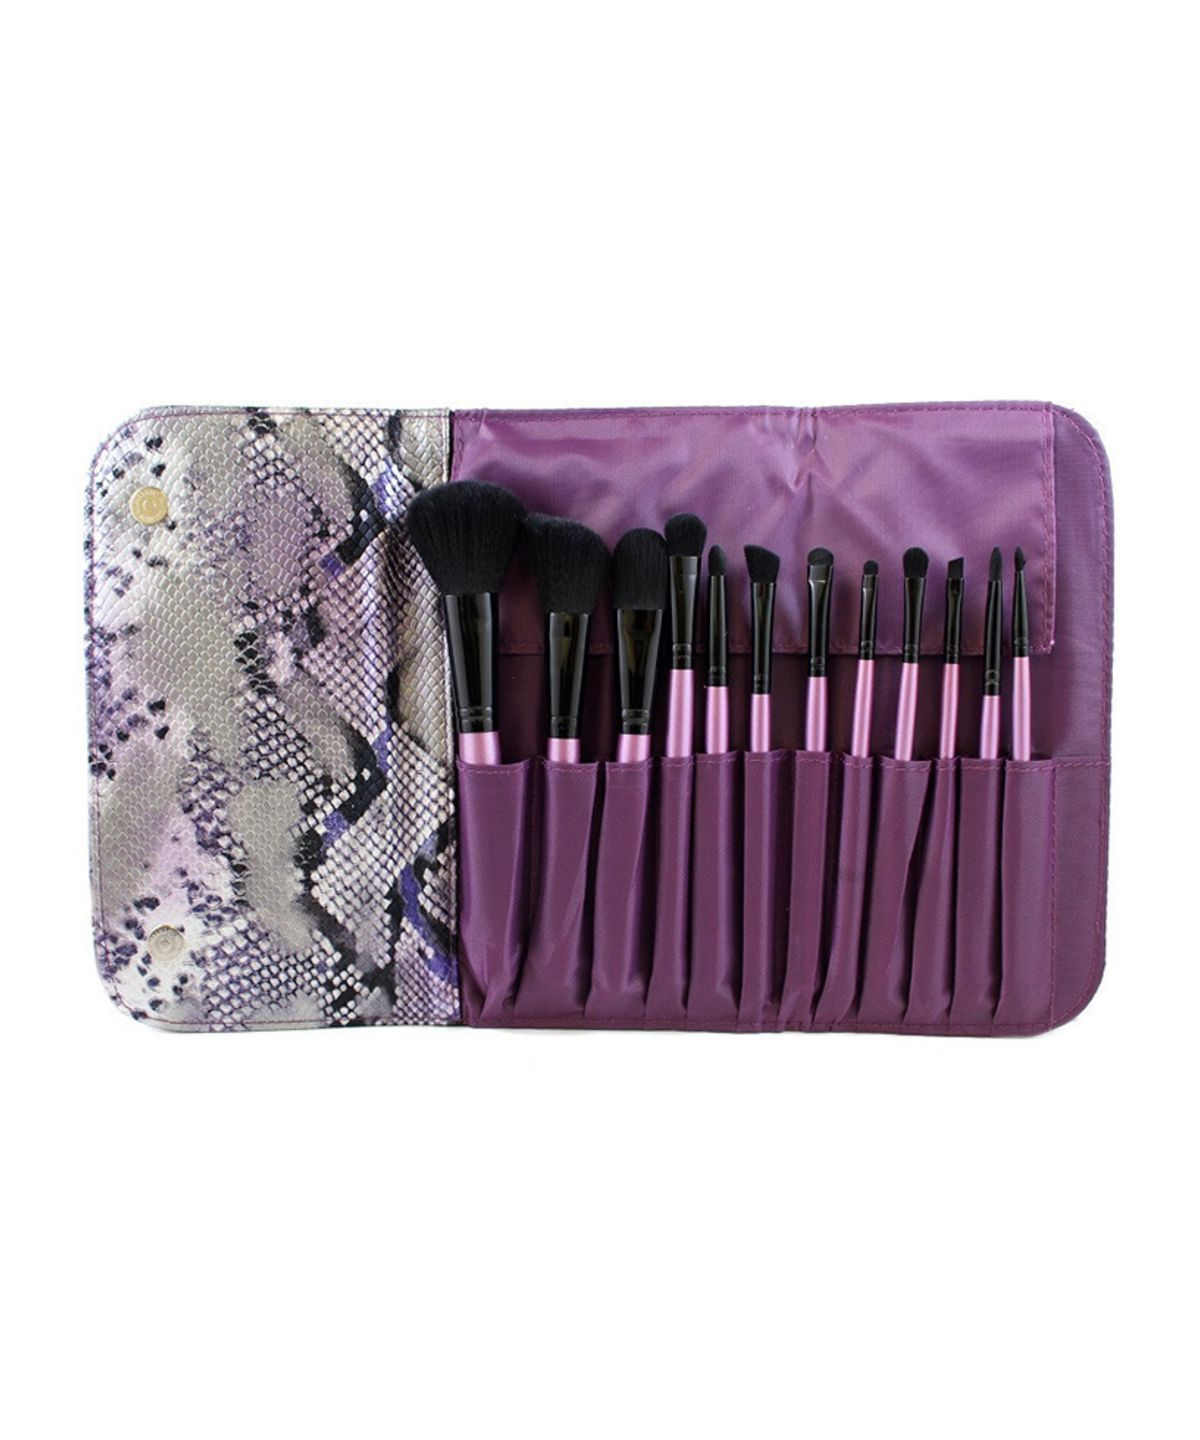 12 Piece Purple Brush Set in Snakeskin Case (693) by